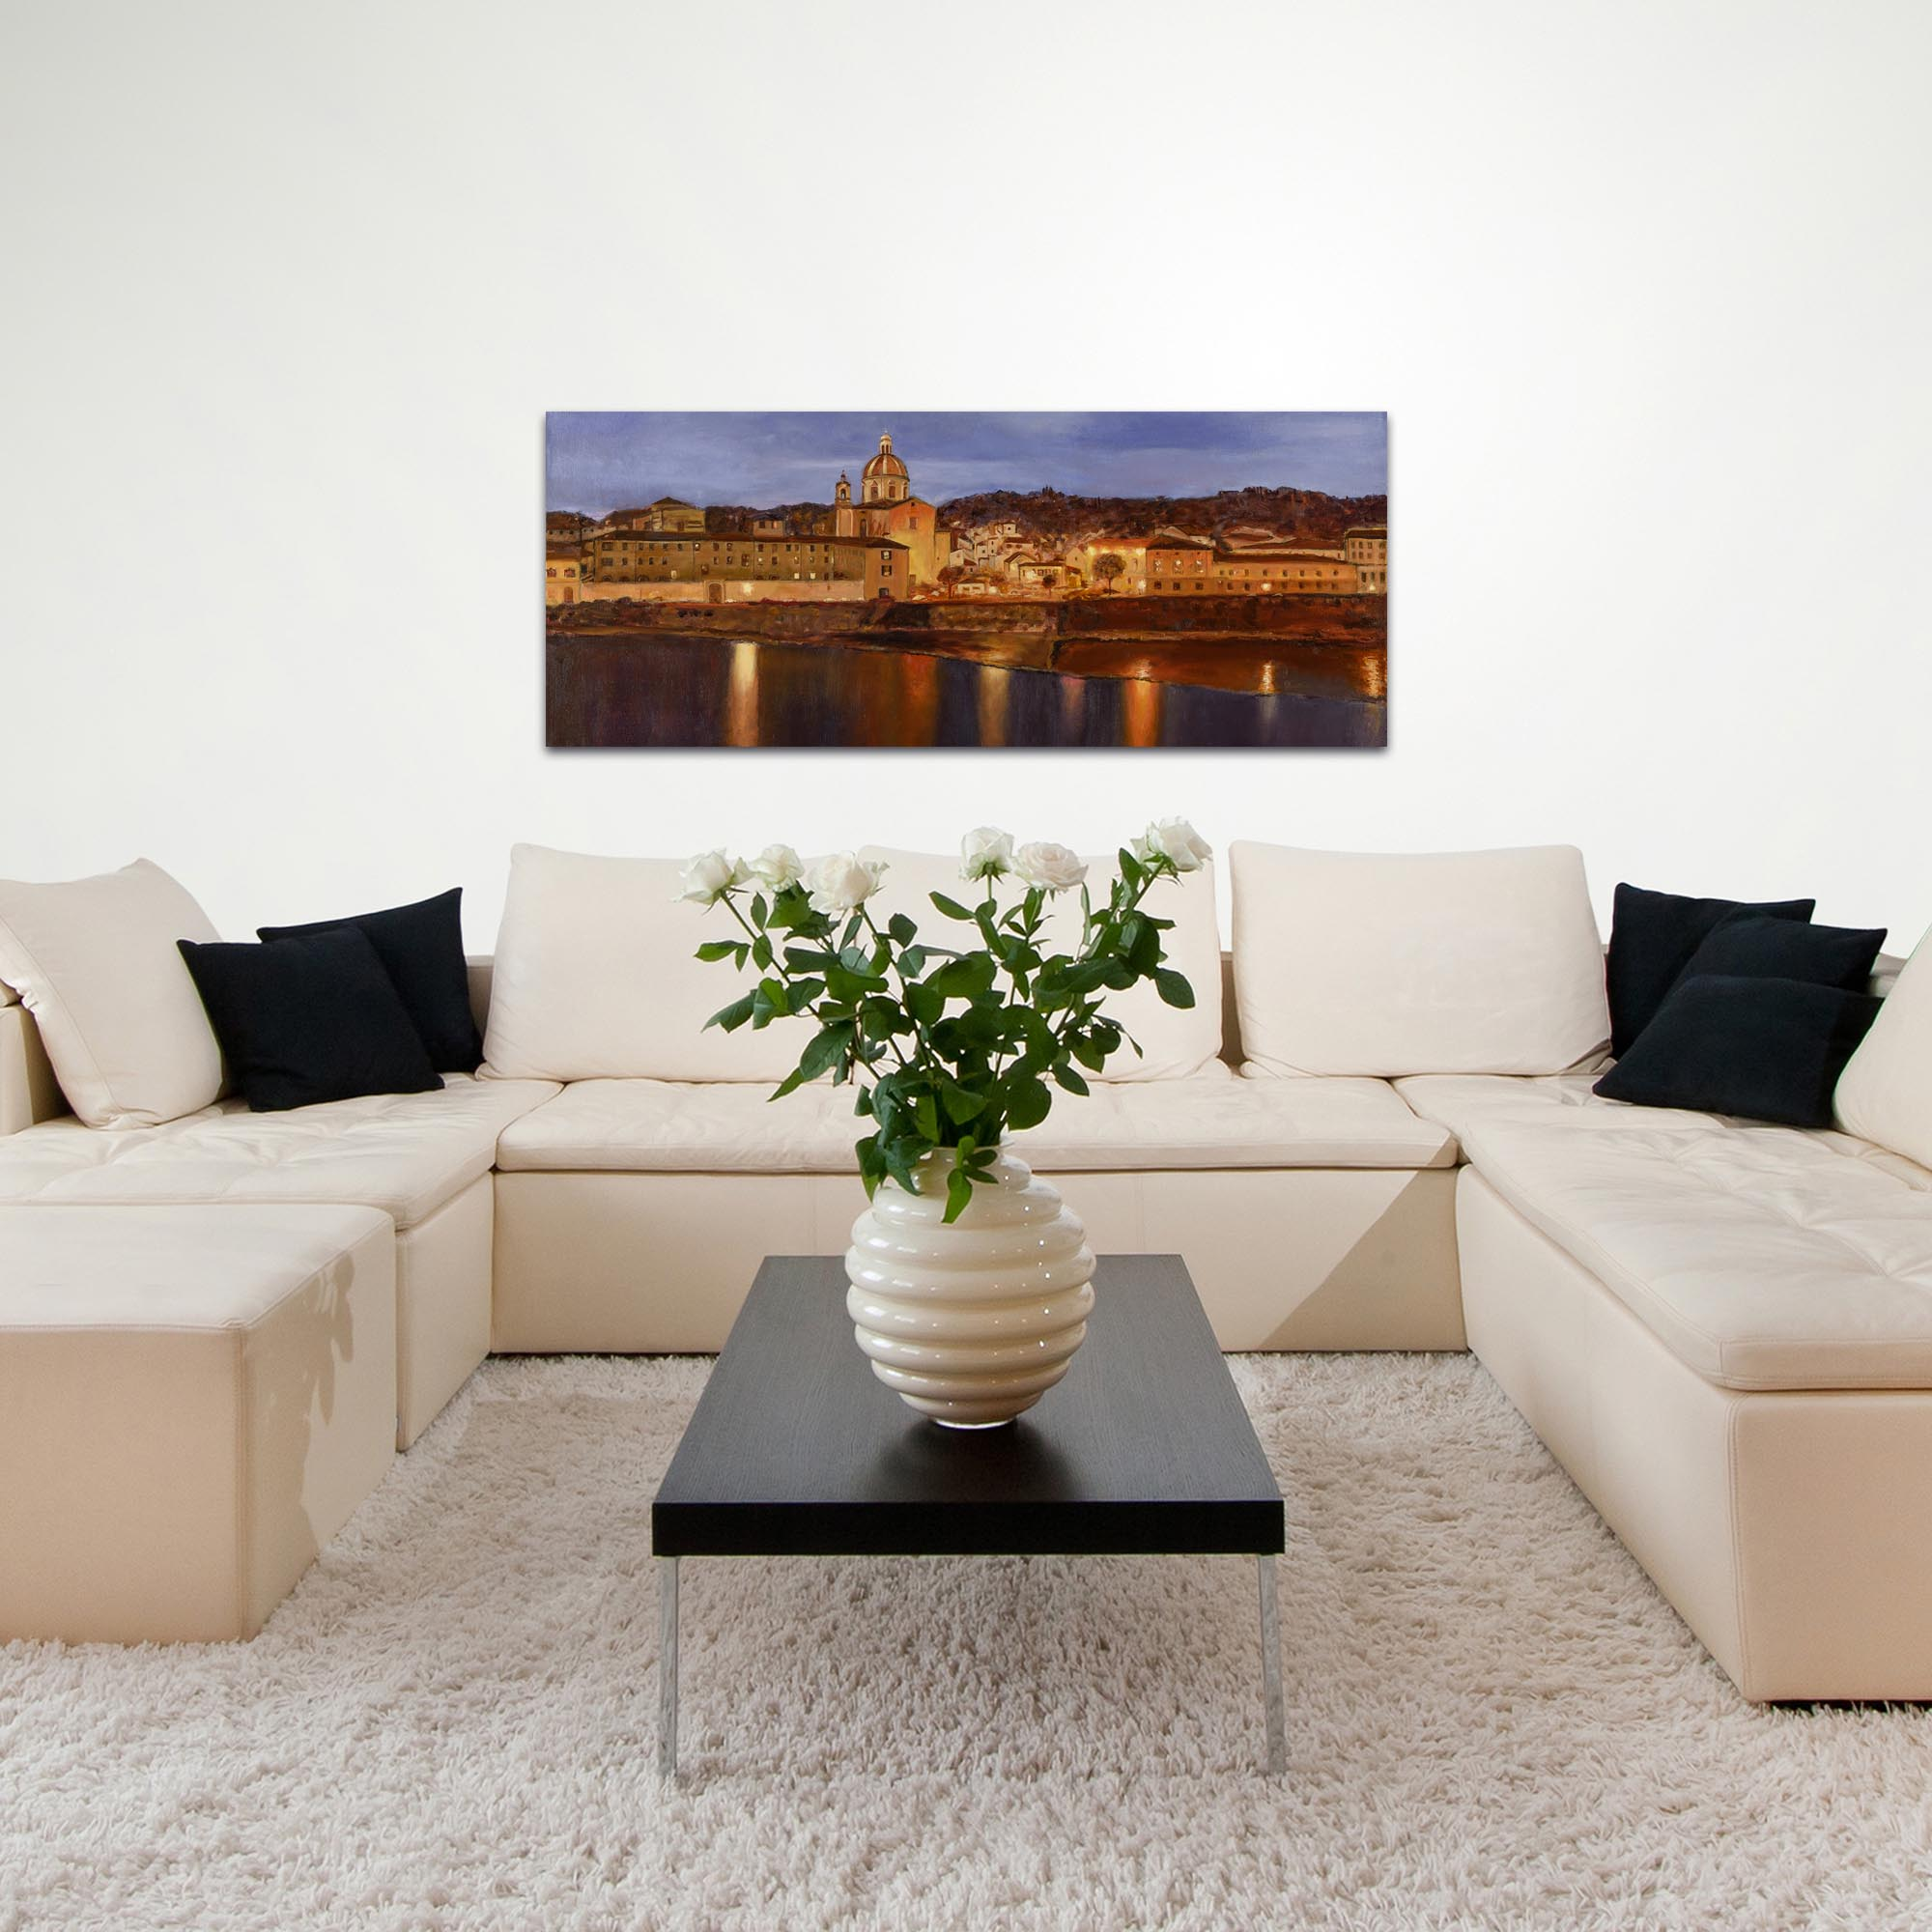 Traditional Wall Art 'Midnight in Florence' - Italian City Decor on Metal or Plexiglass - Lifestyle View